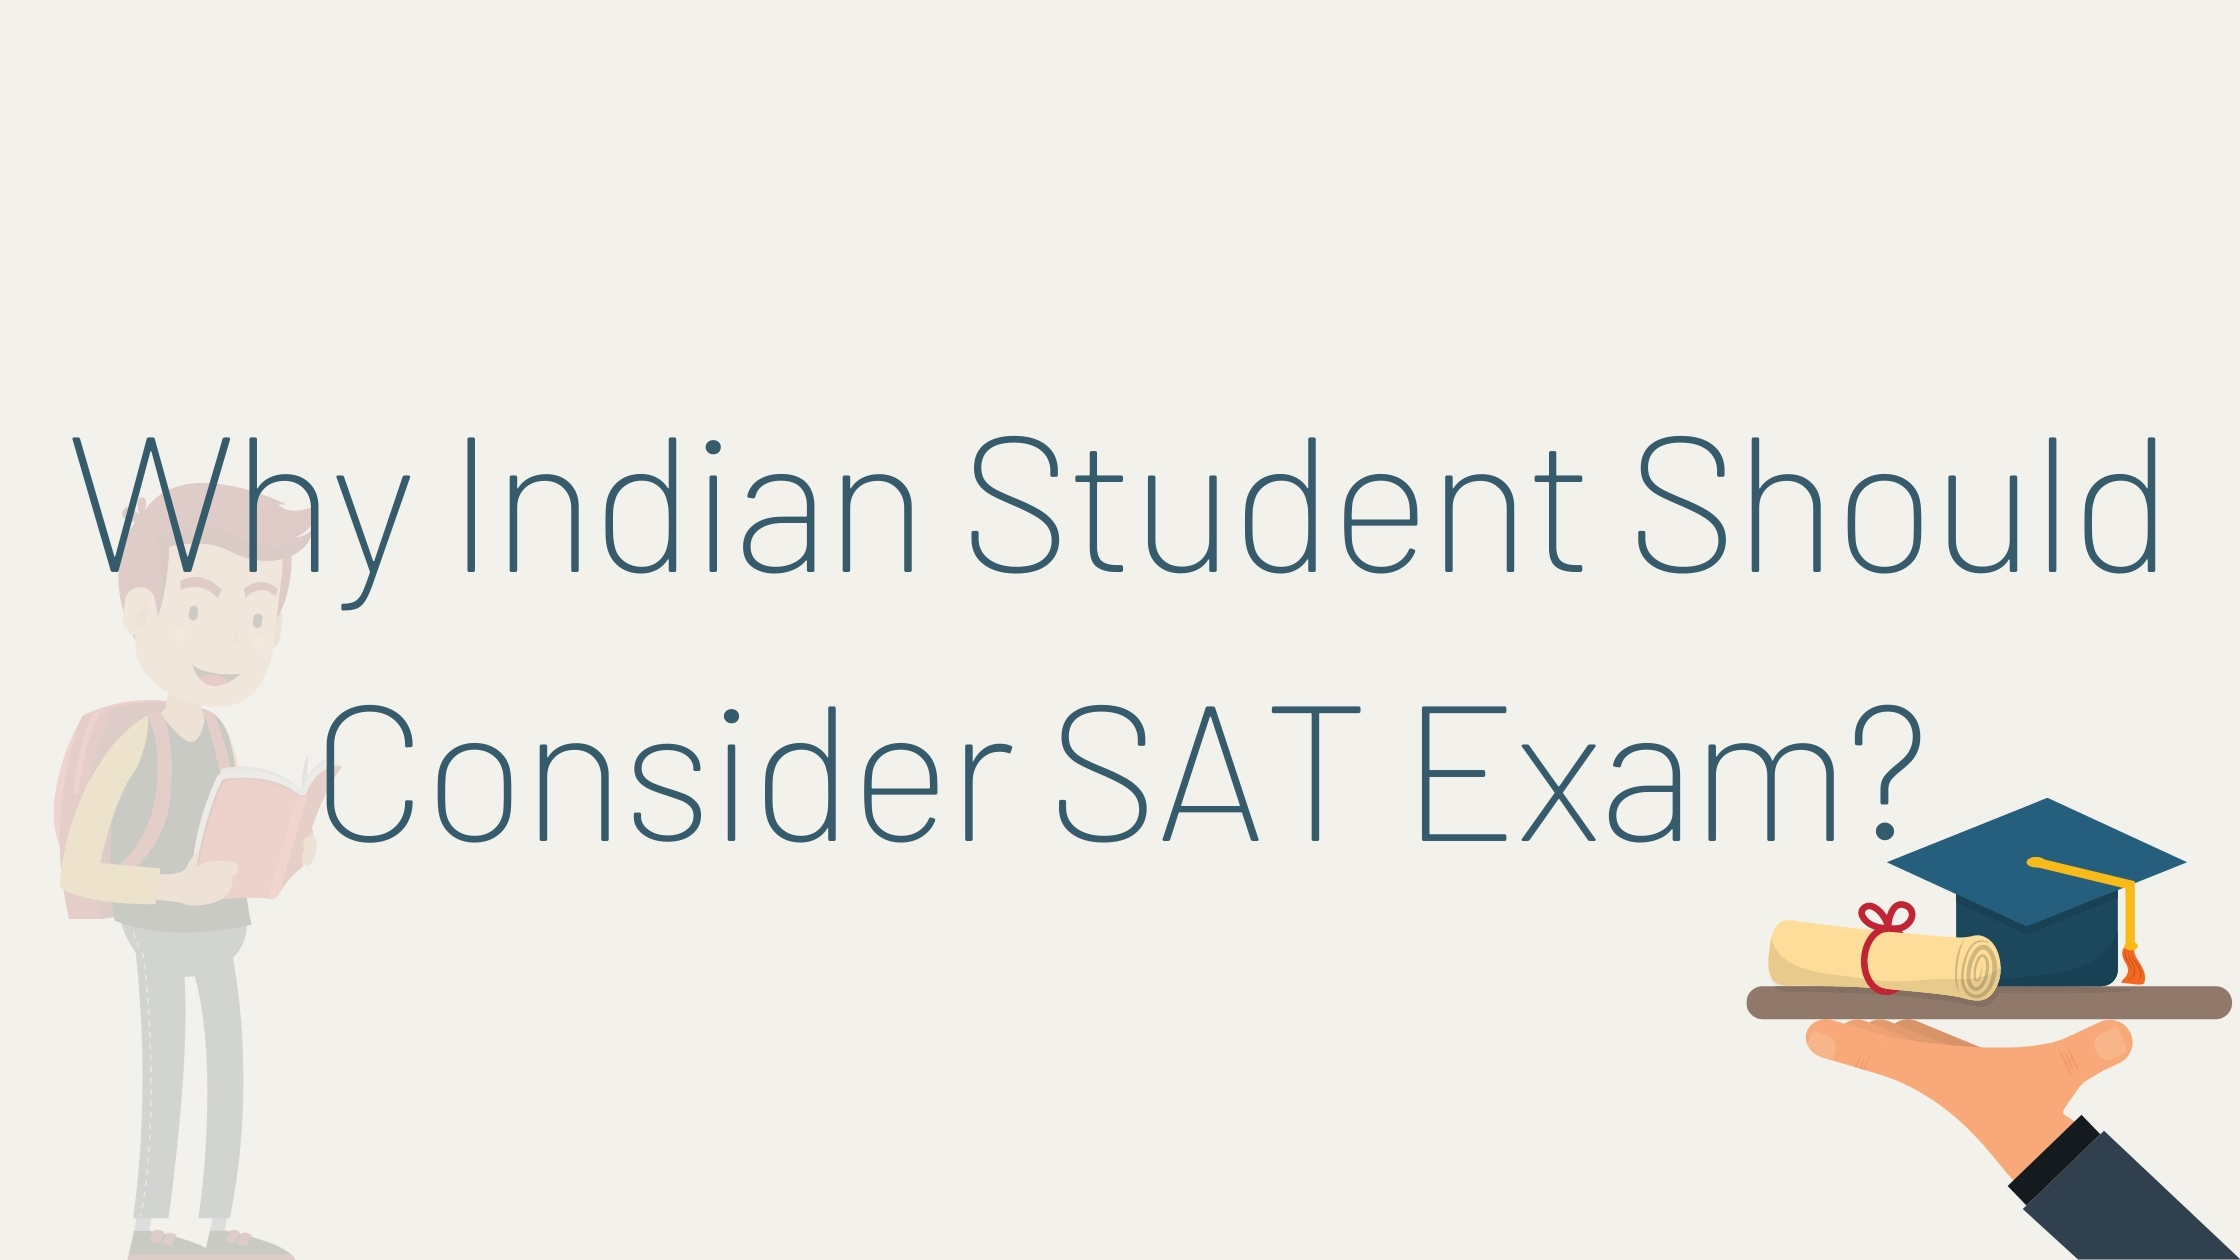 Why SAT Exam, SAT Exam eligibility, sat exam need